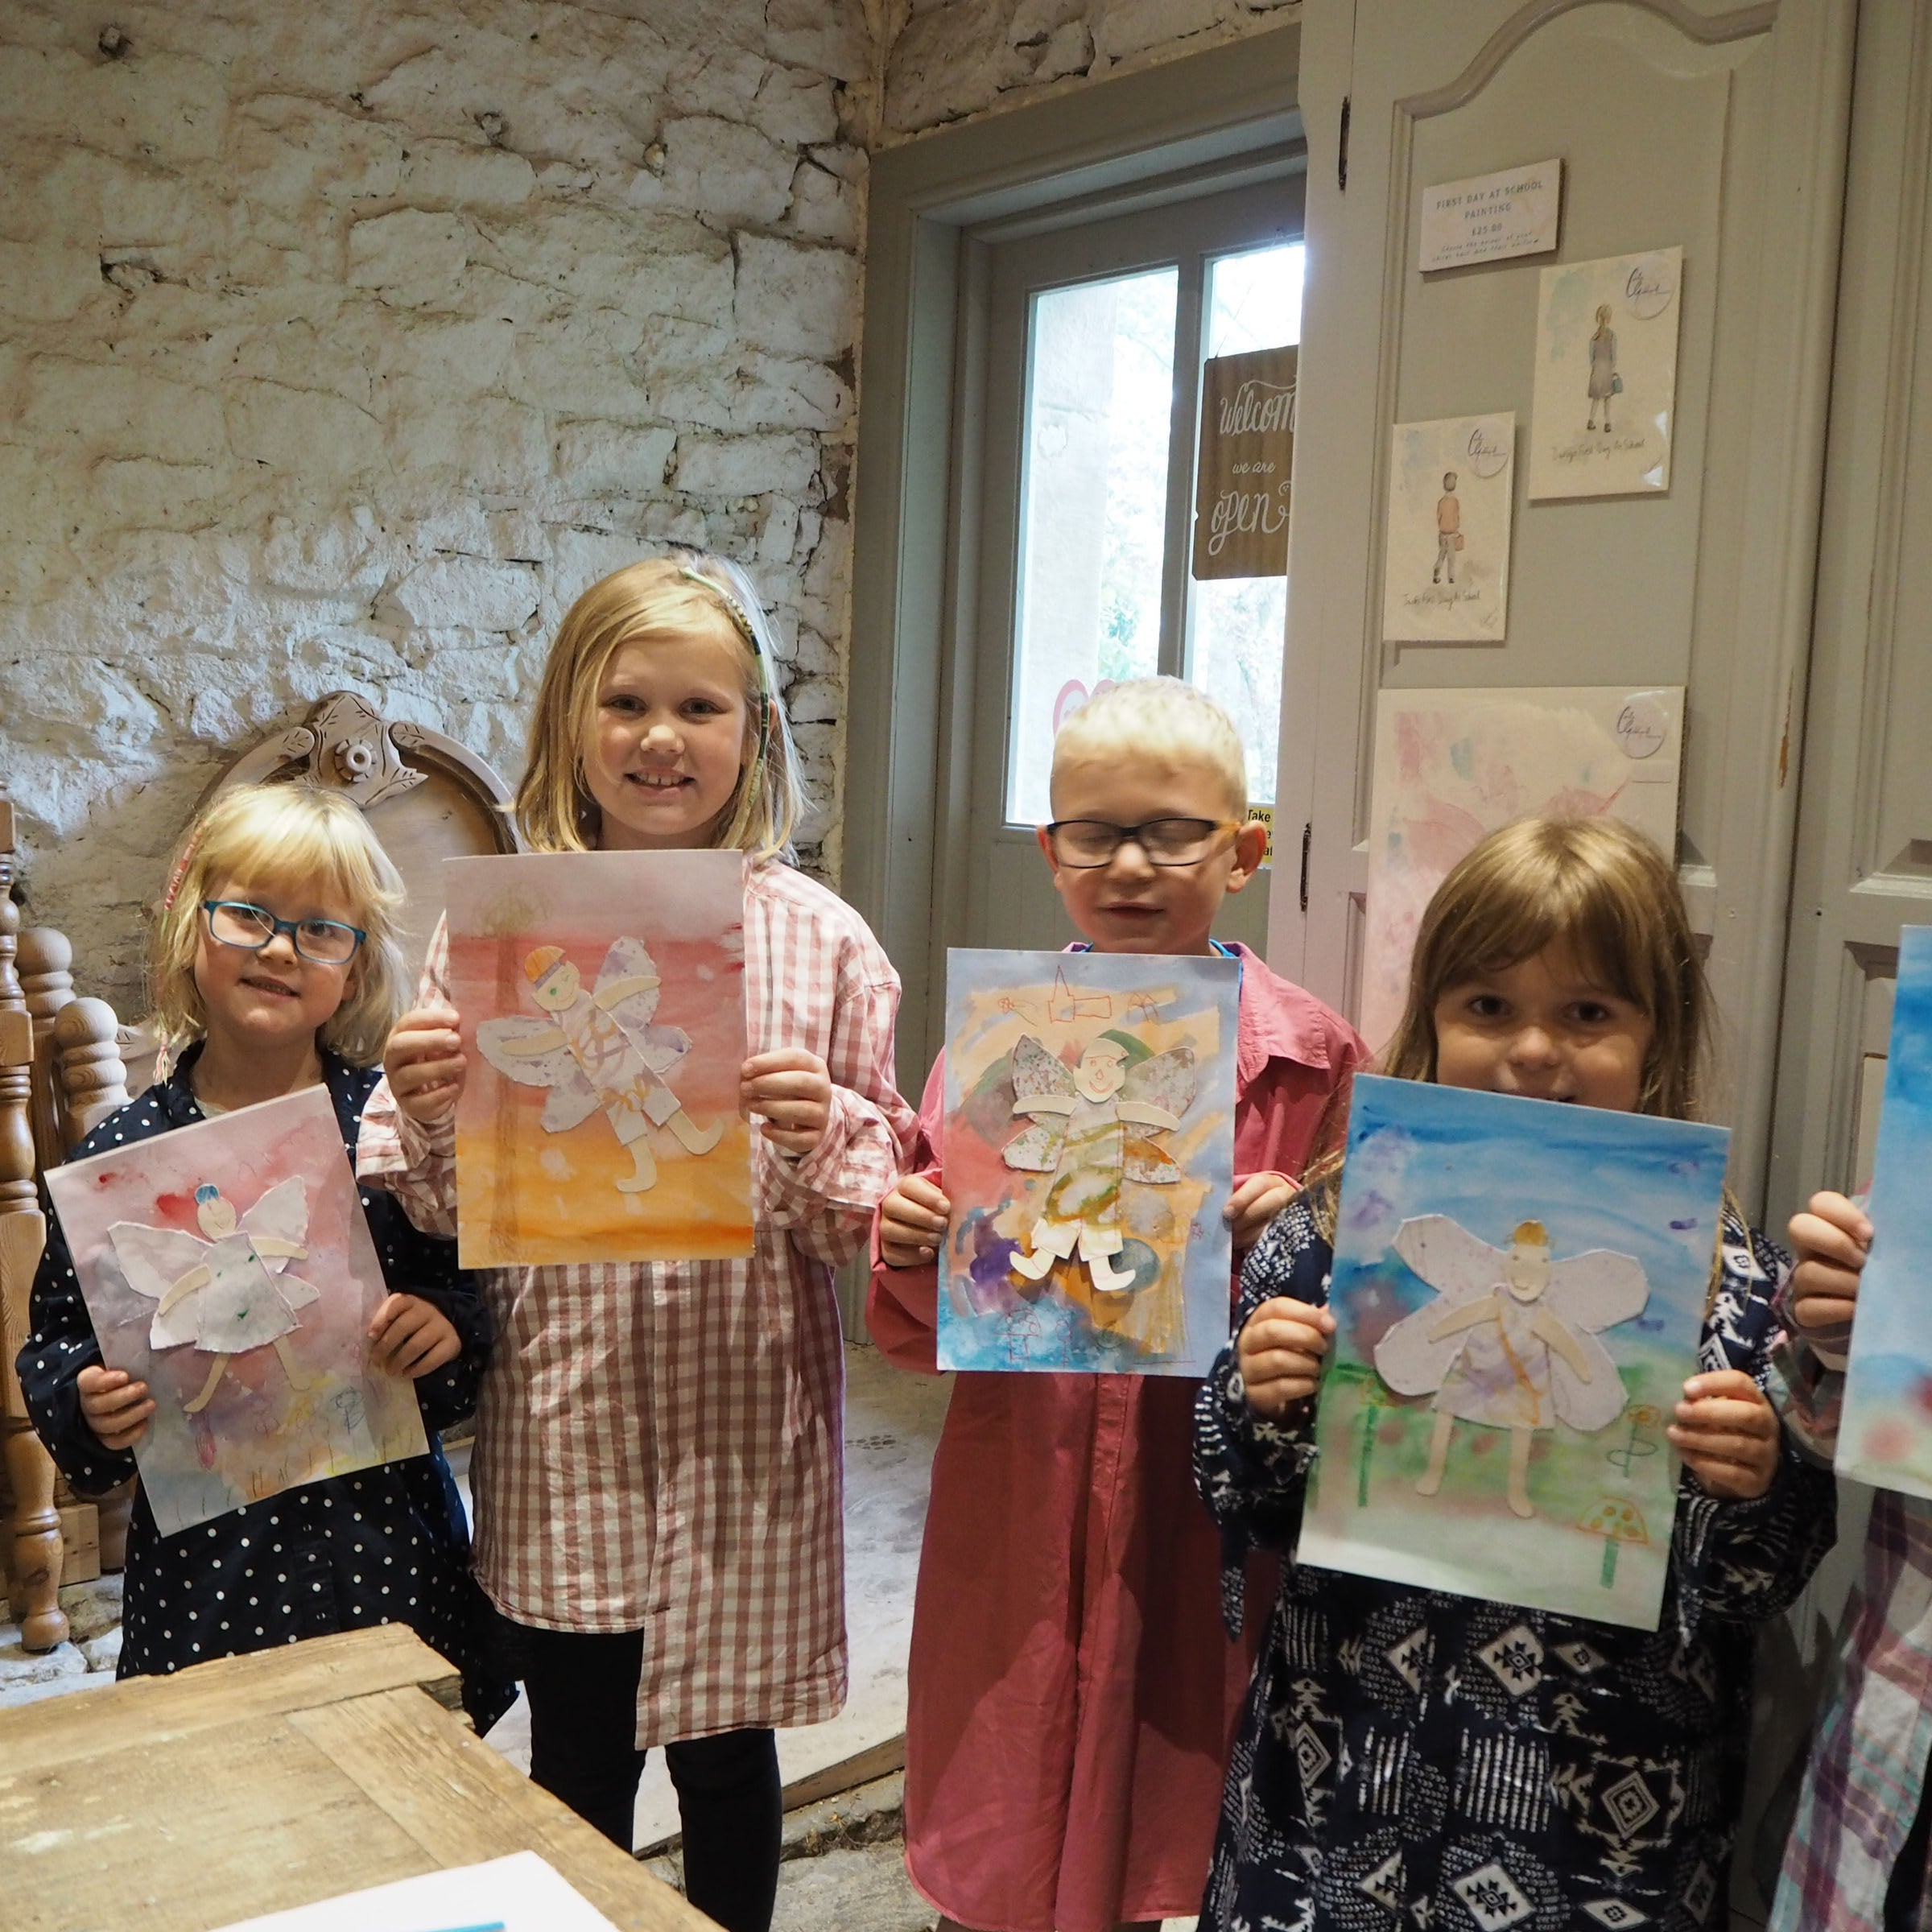 Children holding their artwork